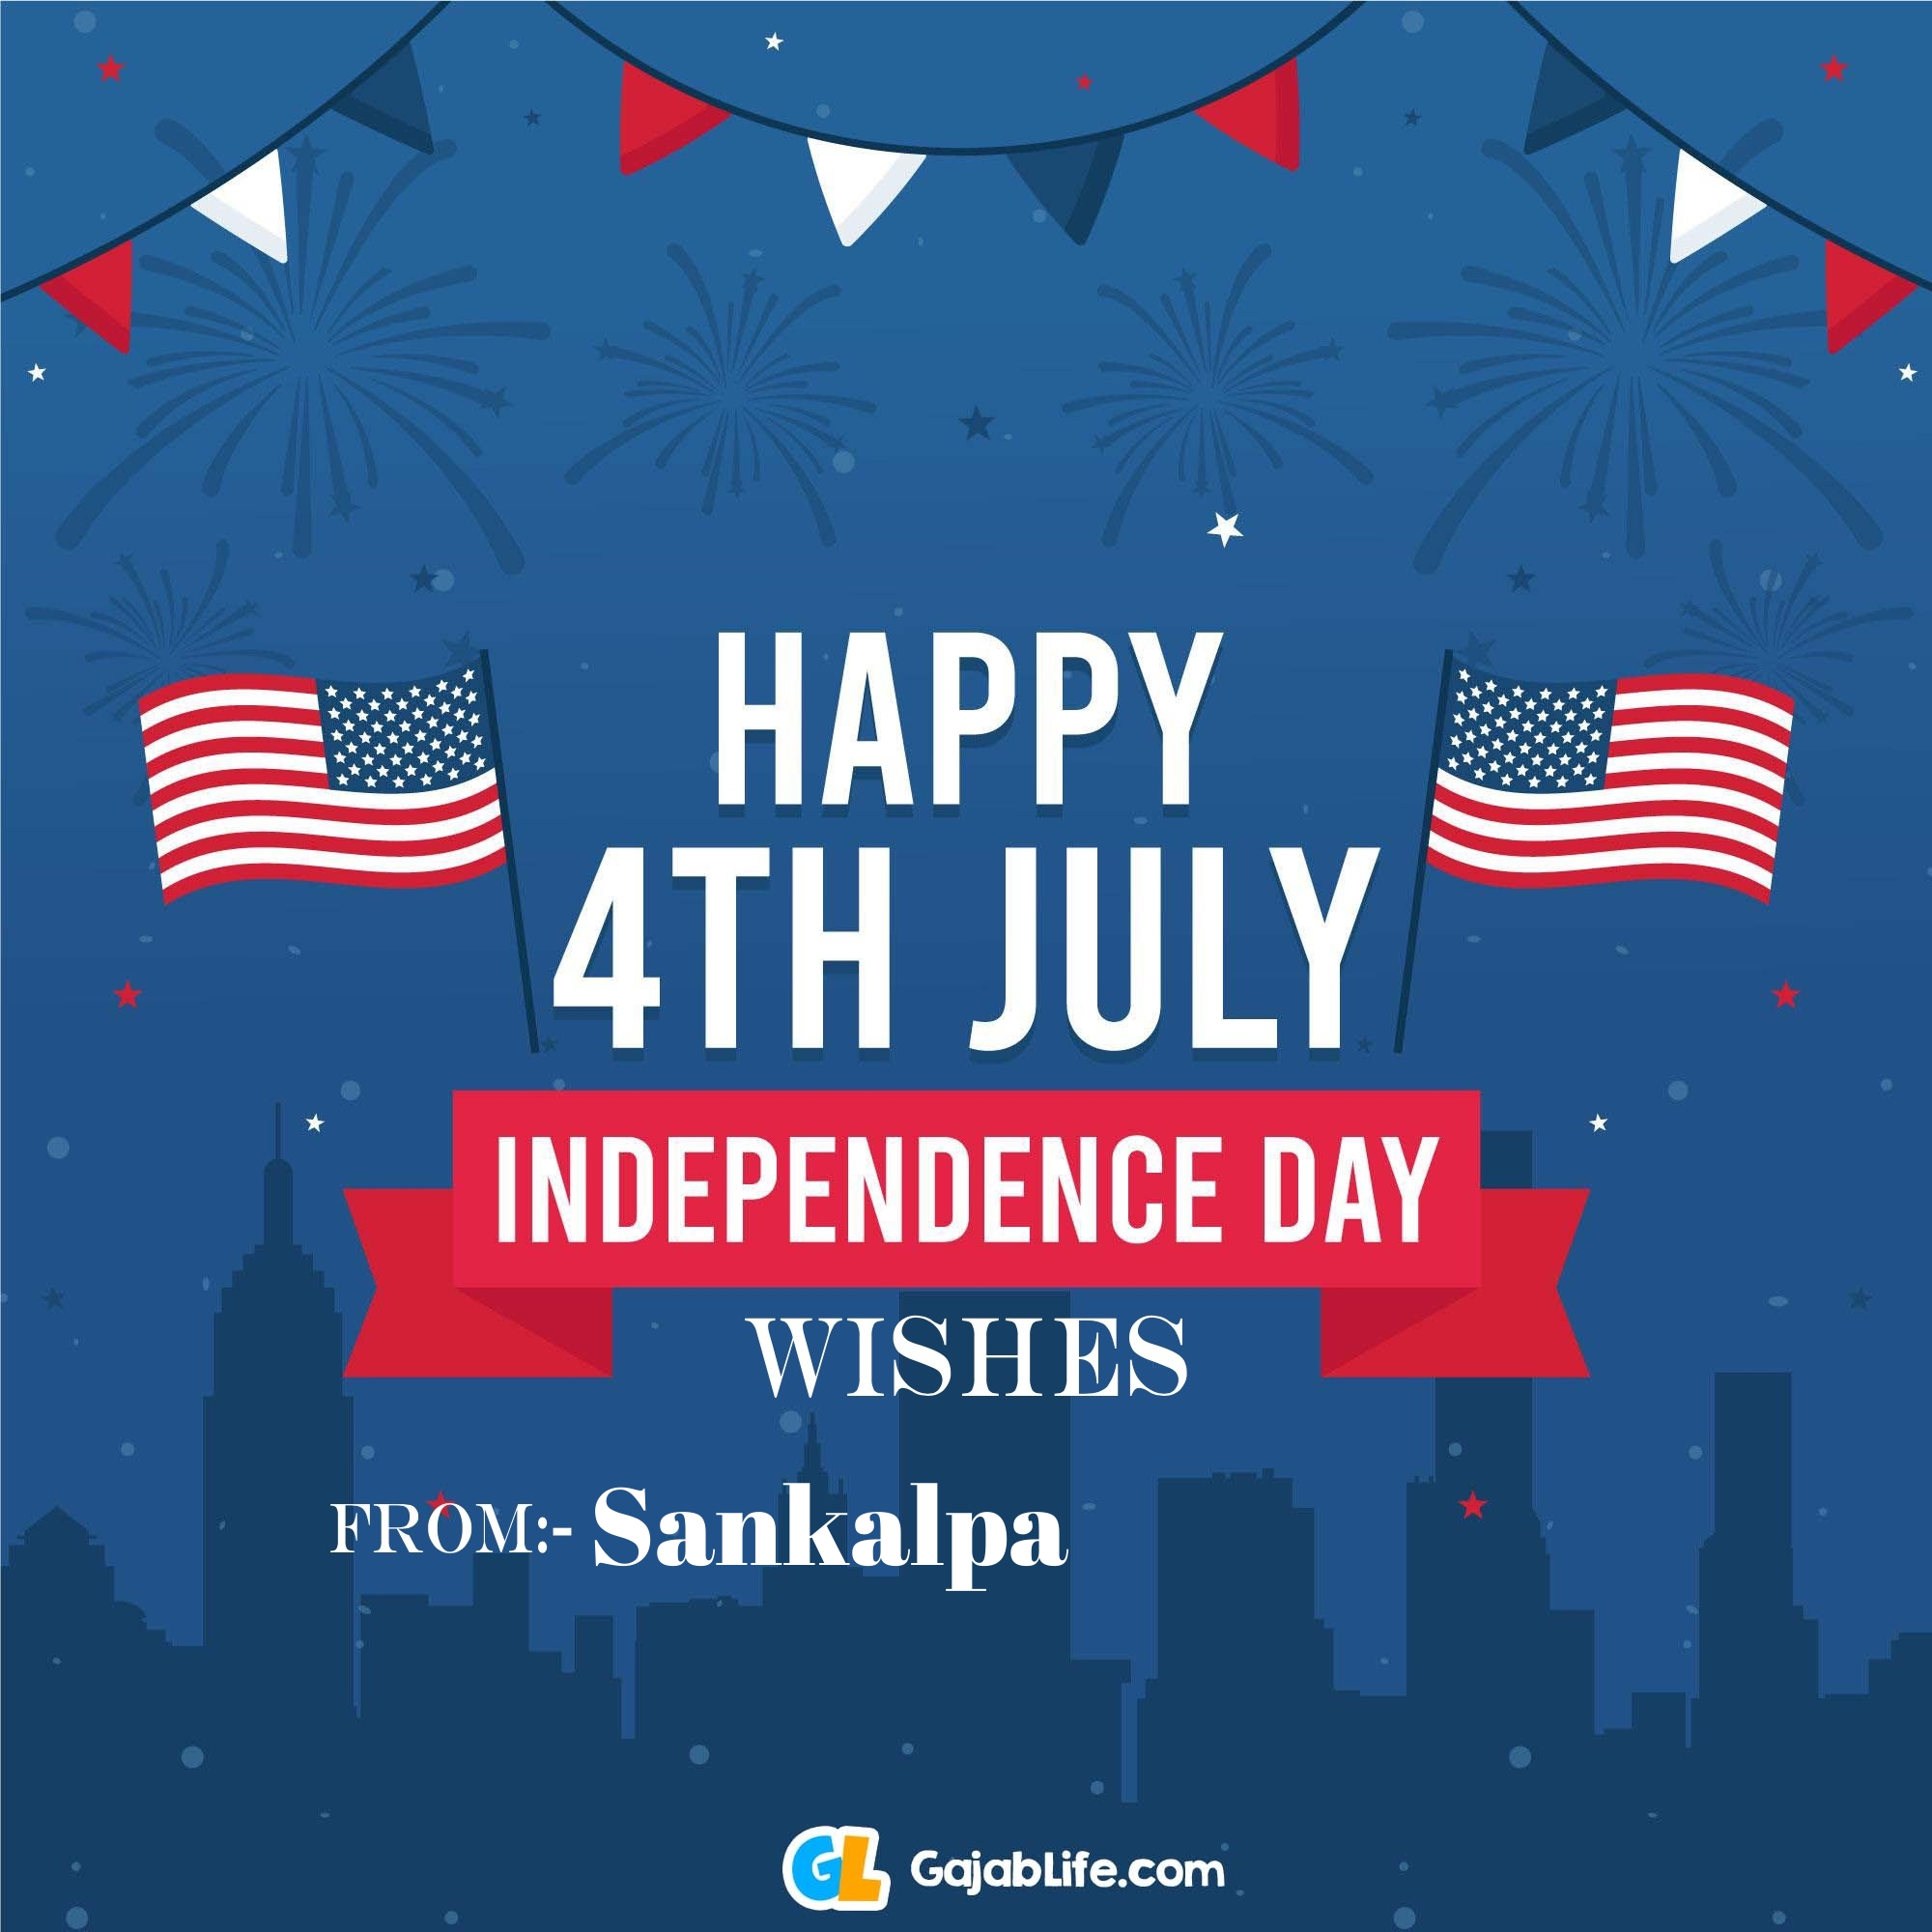 Sankalpa happy independence day united states of america images